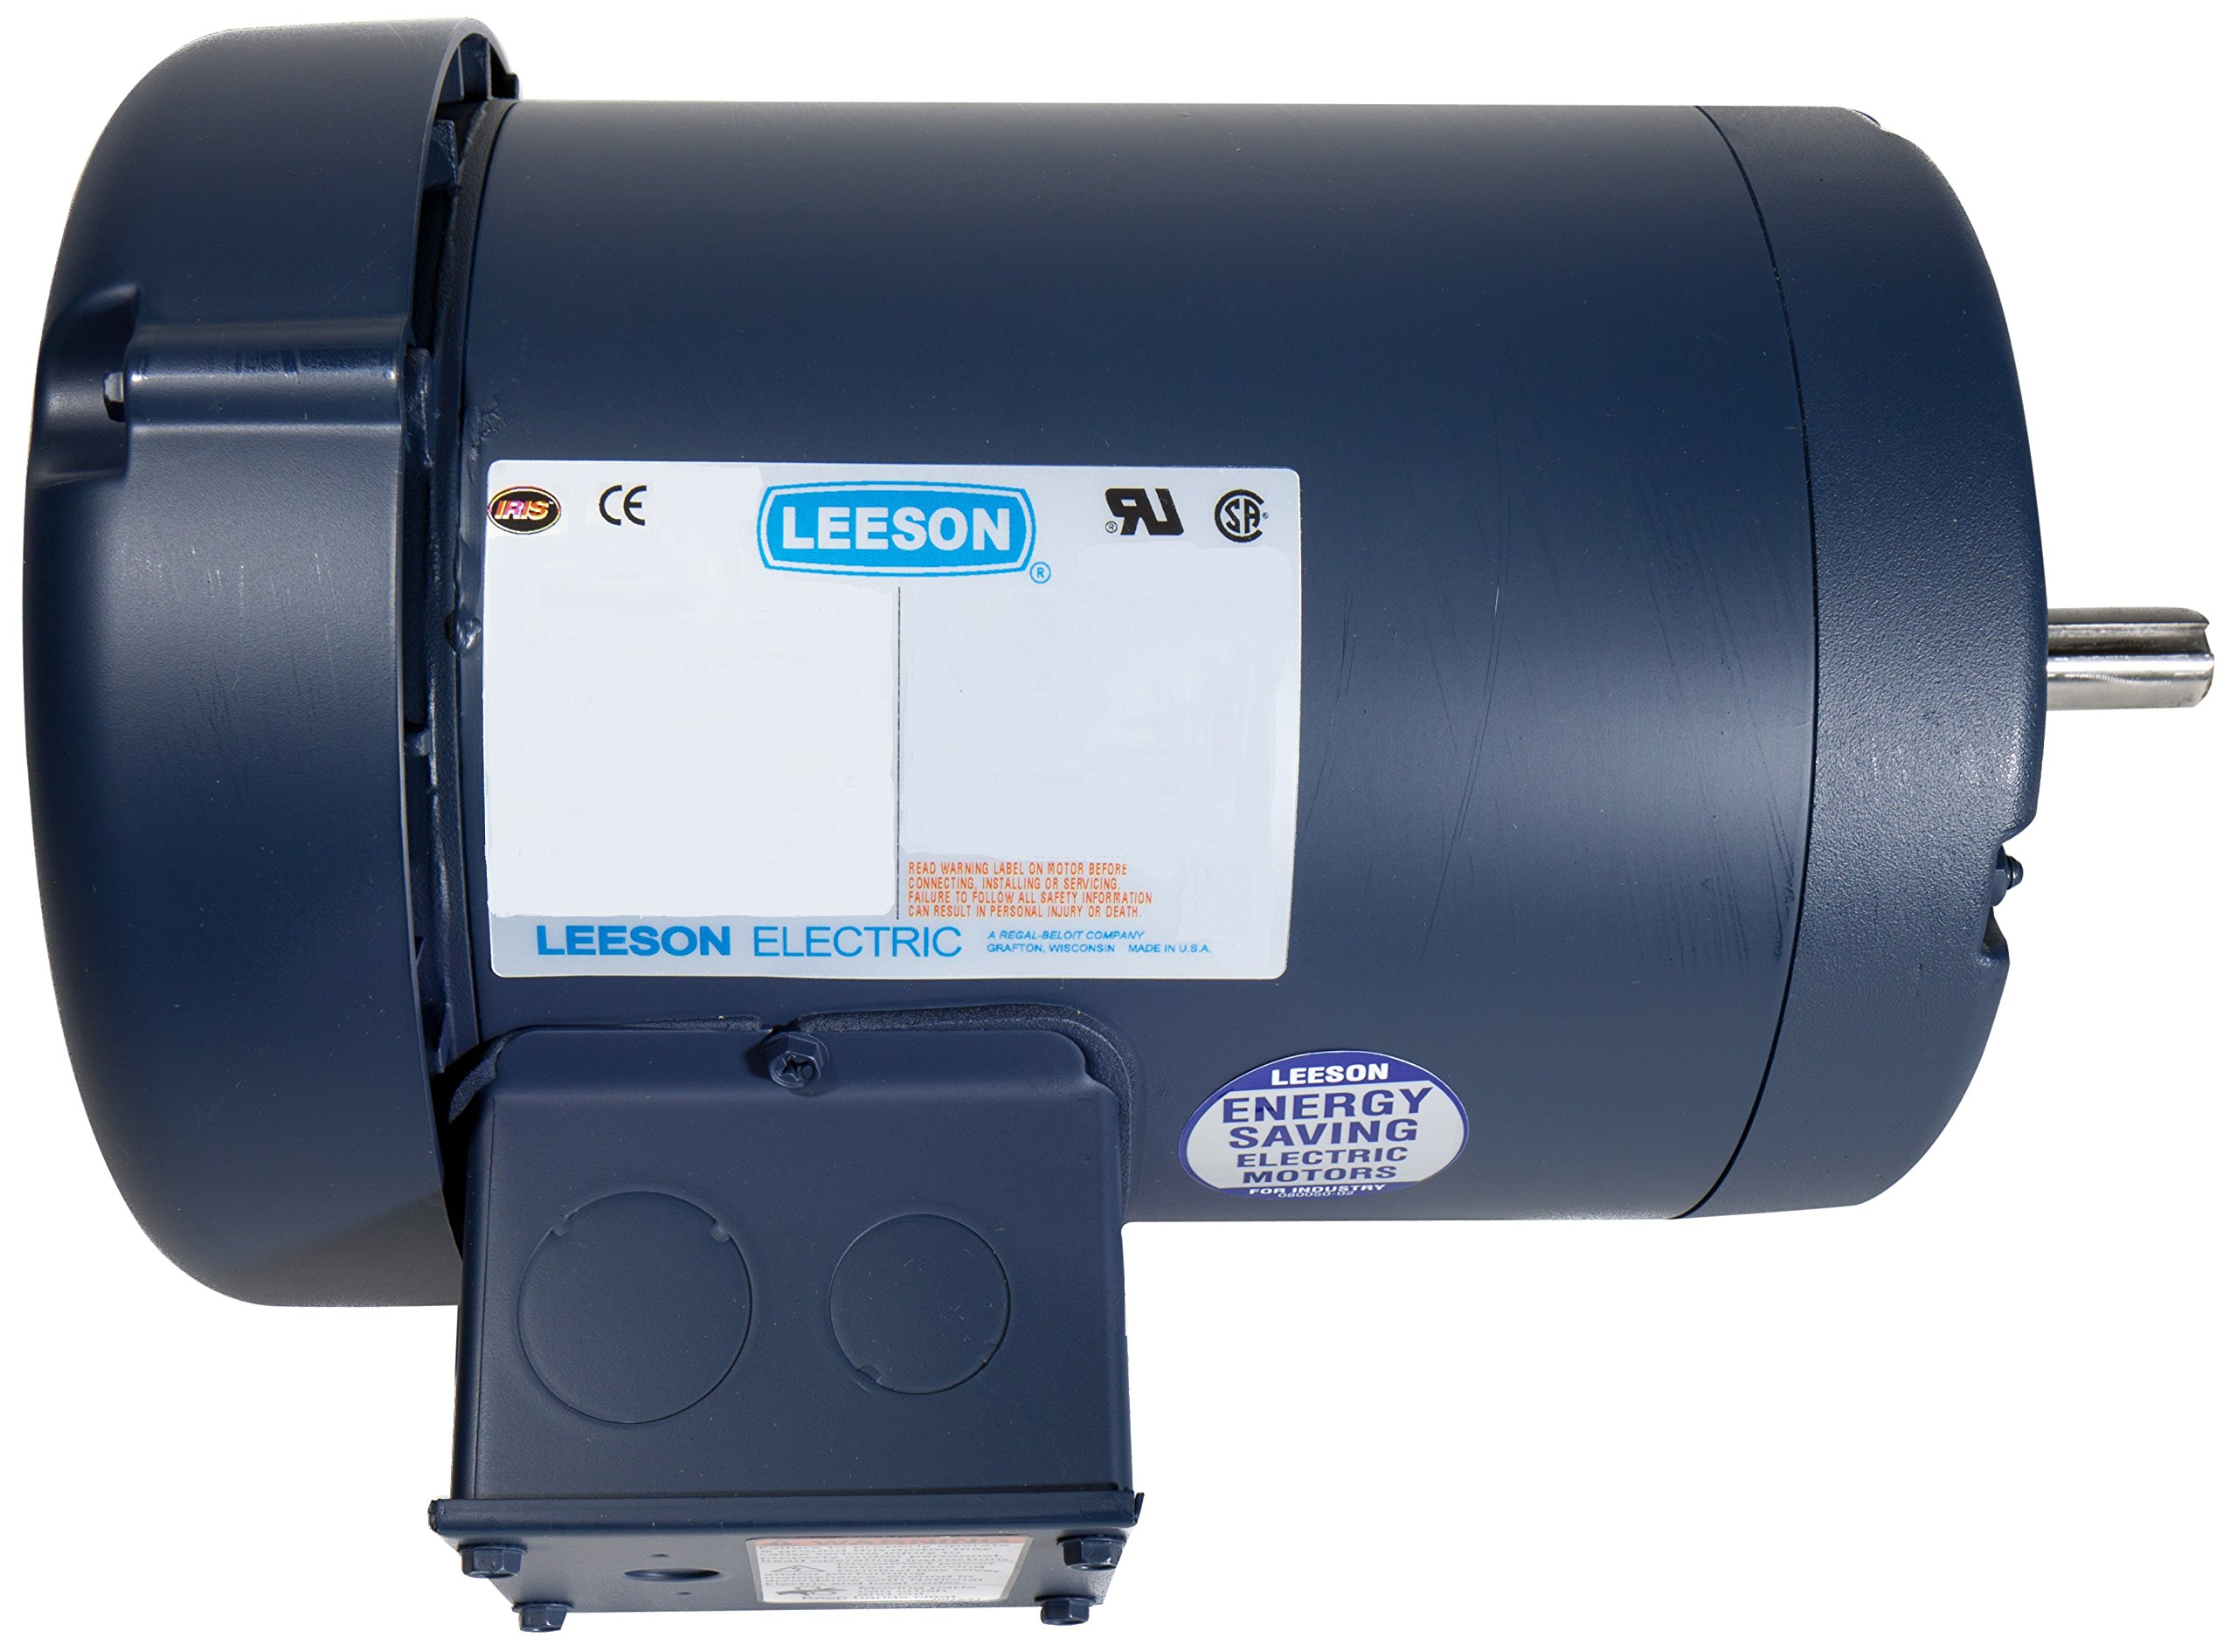 Leeson 116745.00 General Purpose C Face Motor, 3 Phase, 56C Frame, Rigid Mounting, 1HP, 1800 RPM, 208-230/460V Voltage, 60/50Hz Fequency